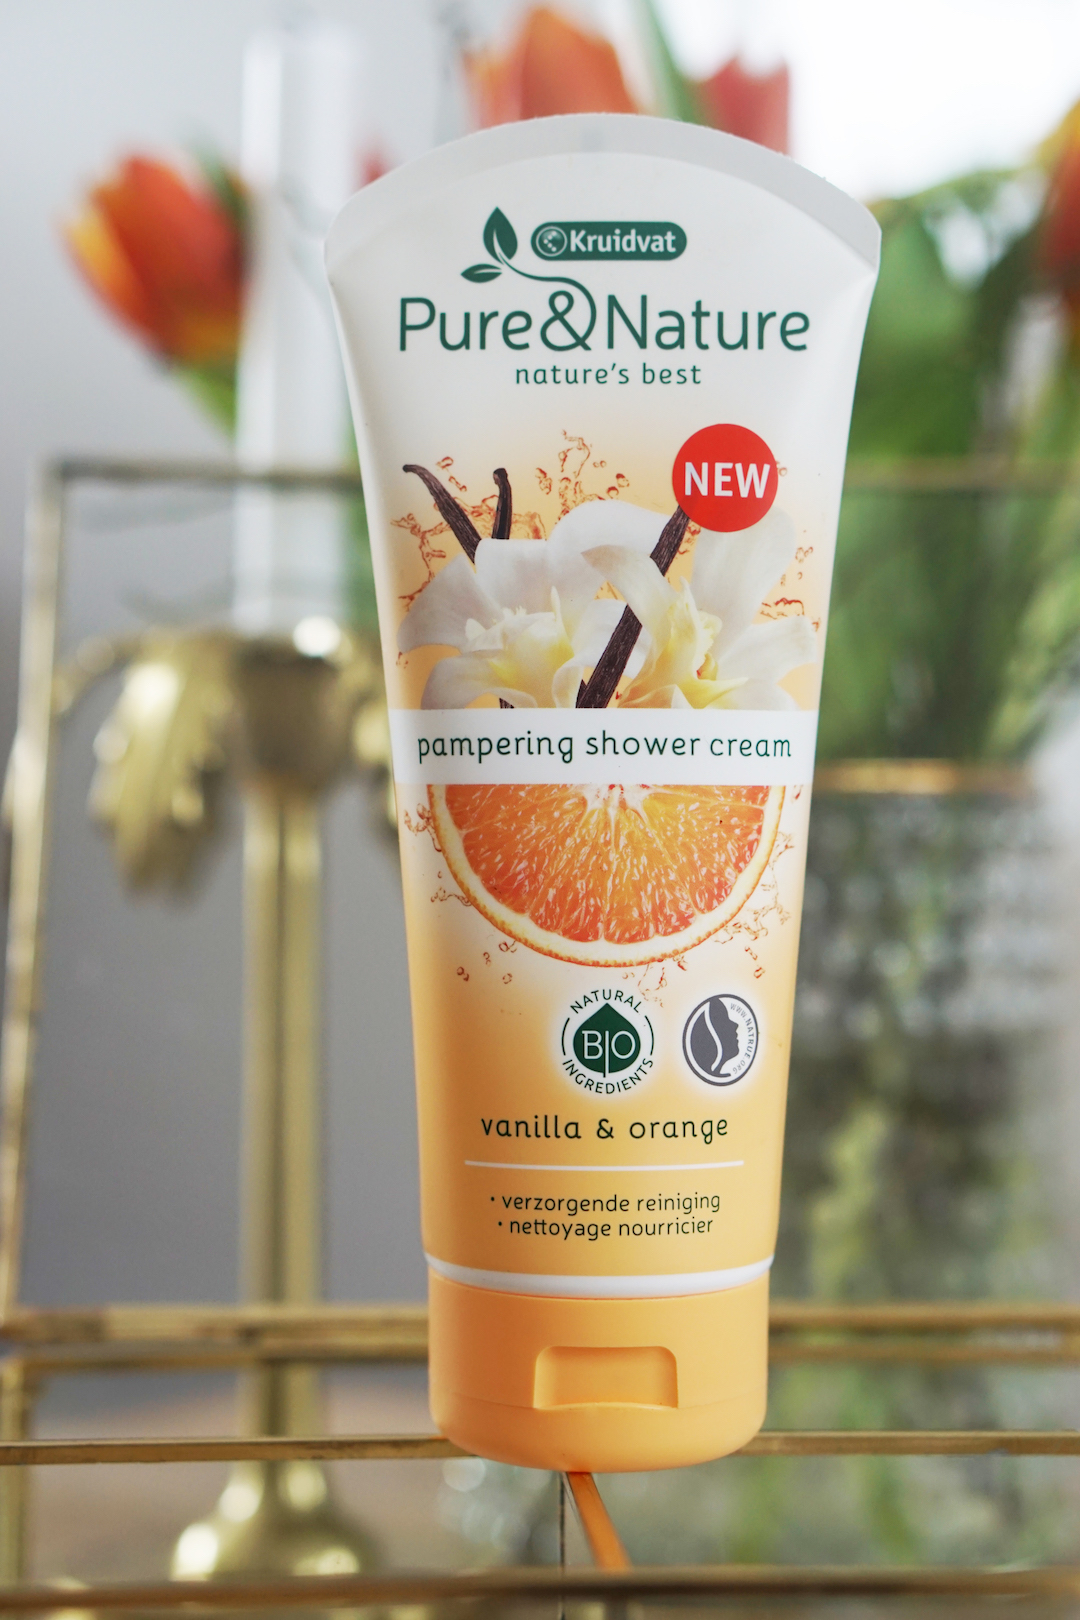 Kruidvat Pure & Nature Shower Gel / Cream